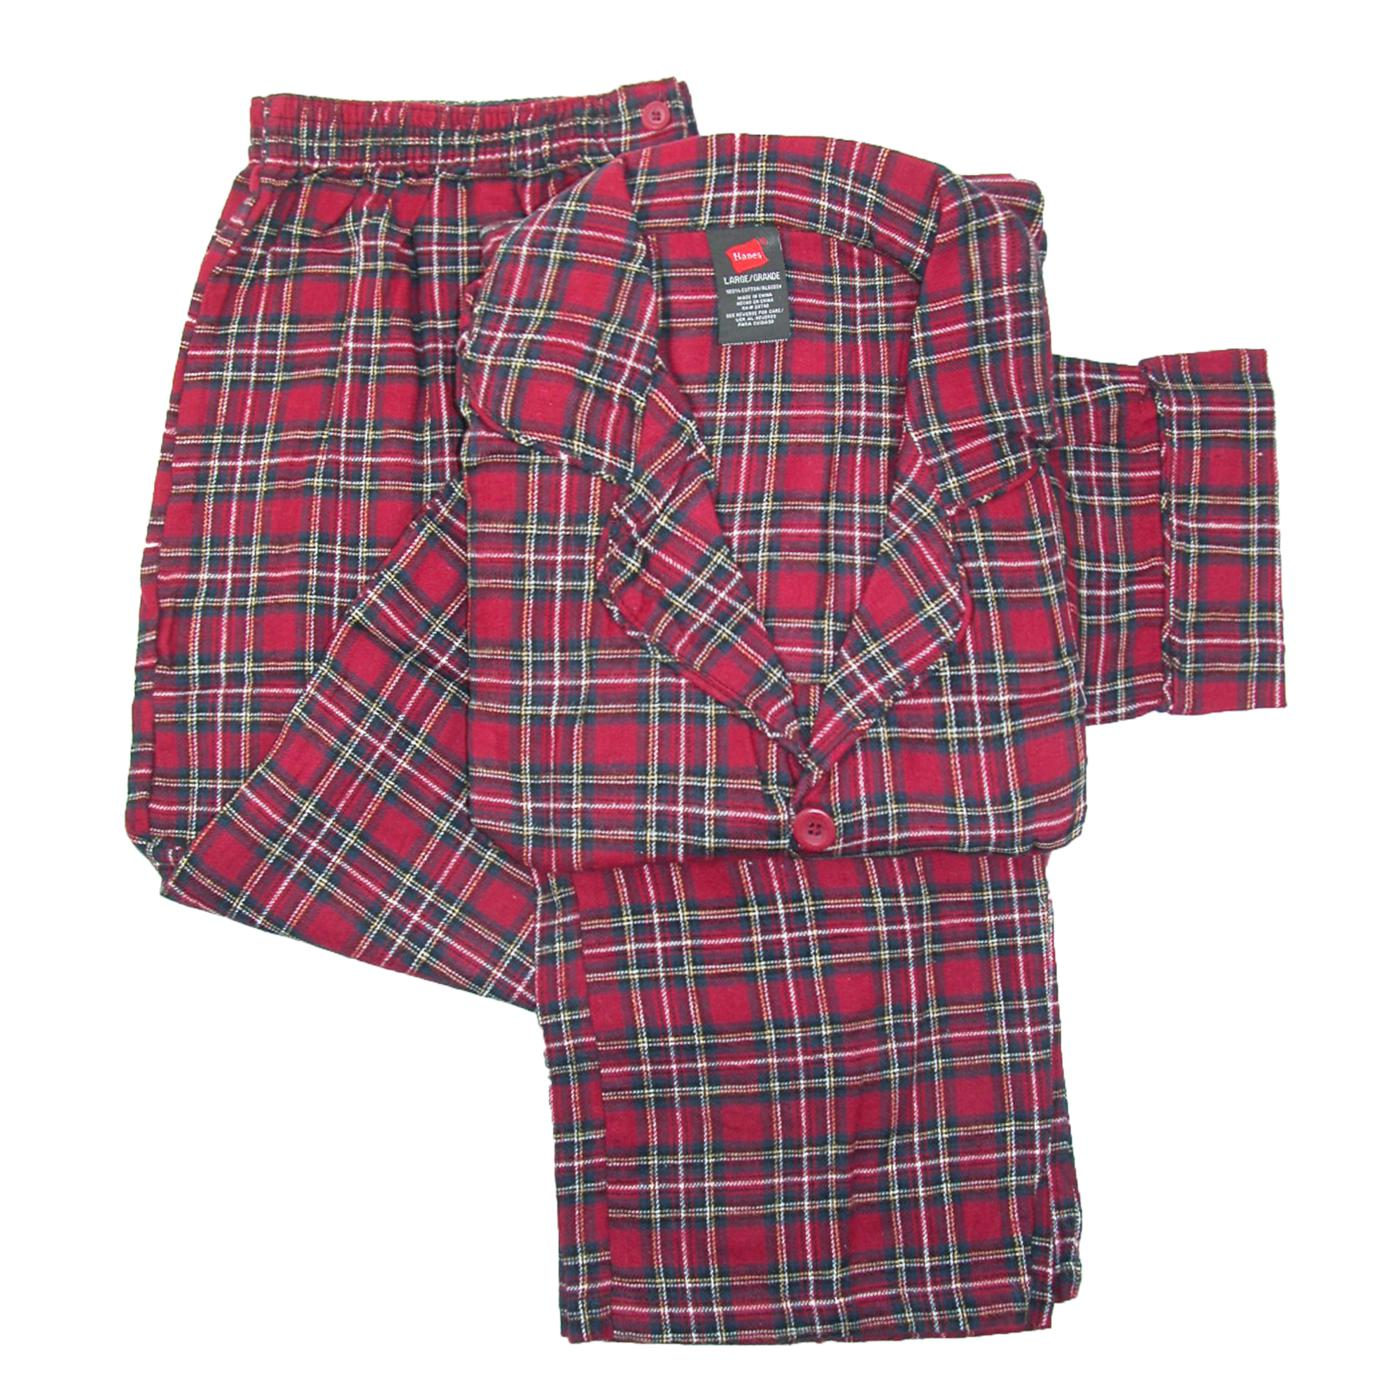 Pictures of best . Pajamas clipart flannel